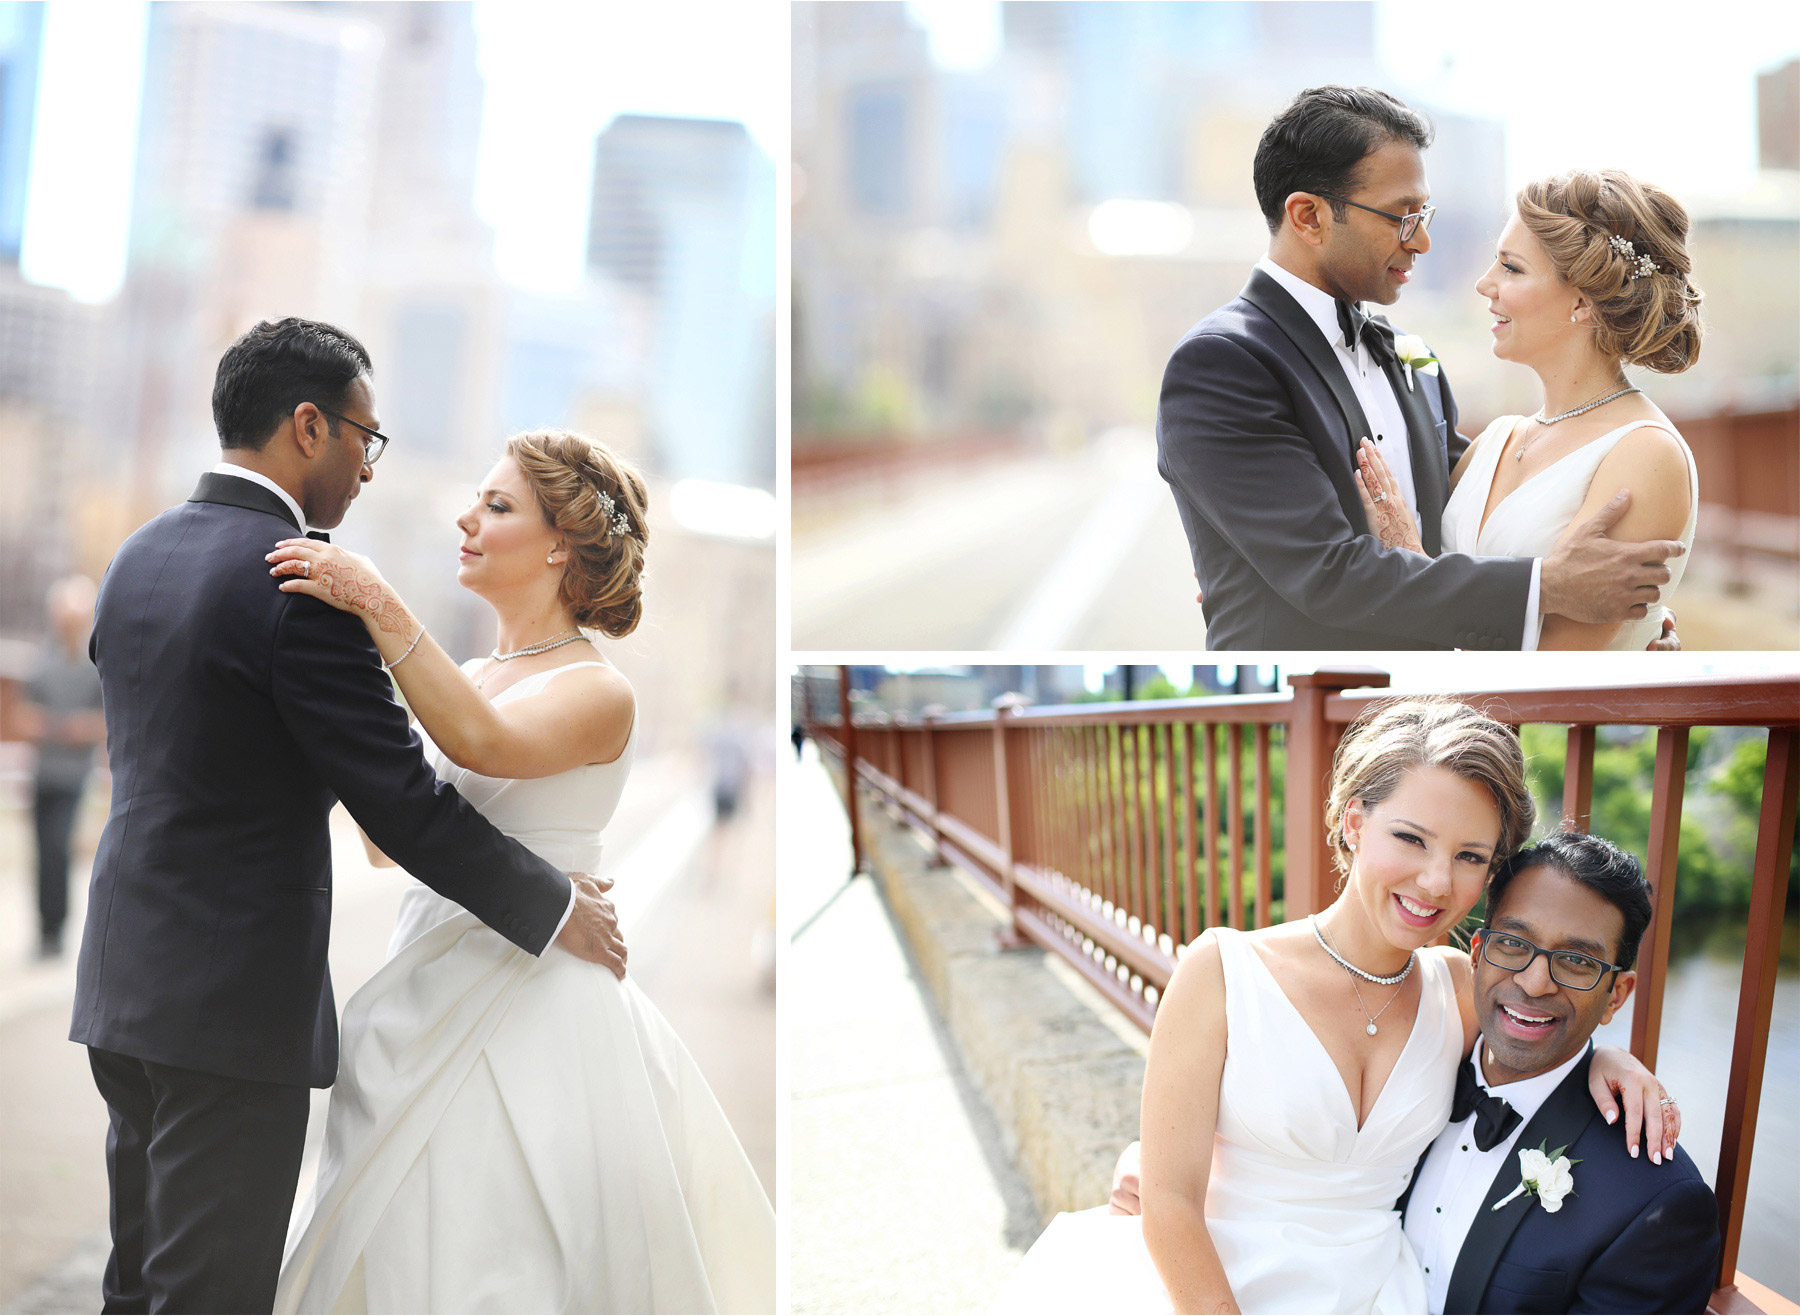 19-Minneapolis-Minnesota-Wedding-Photographer-by-Andrew-Vick-Photography--Spring-Stone-Arch-Bridge-Bride-Groom-Henna-Dance-Embrace-Rachel-and-Venu.jpg